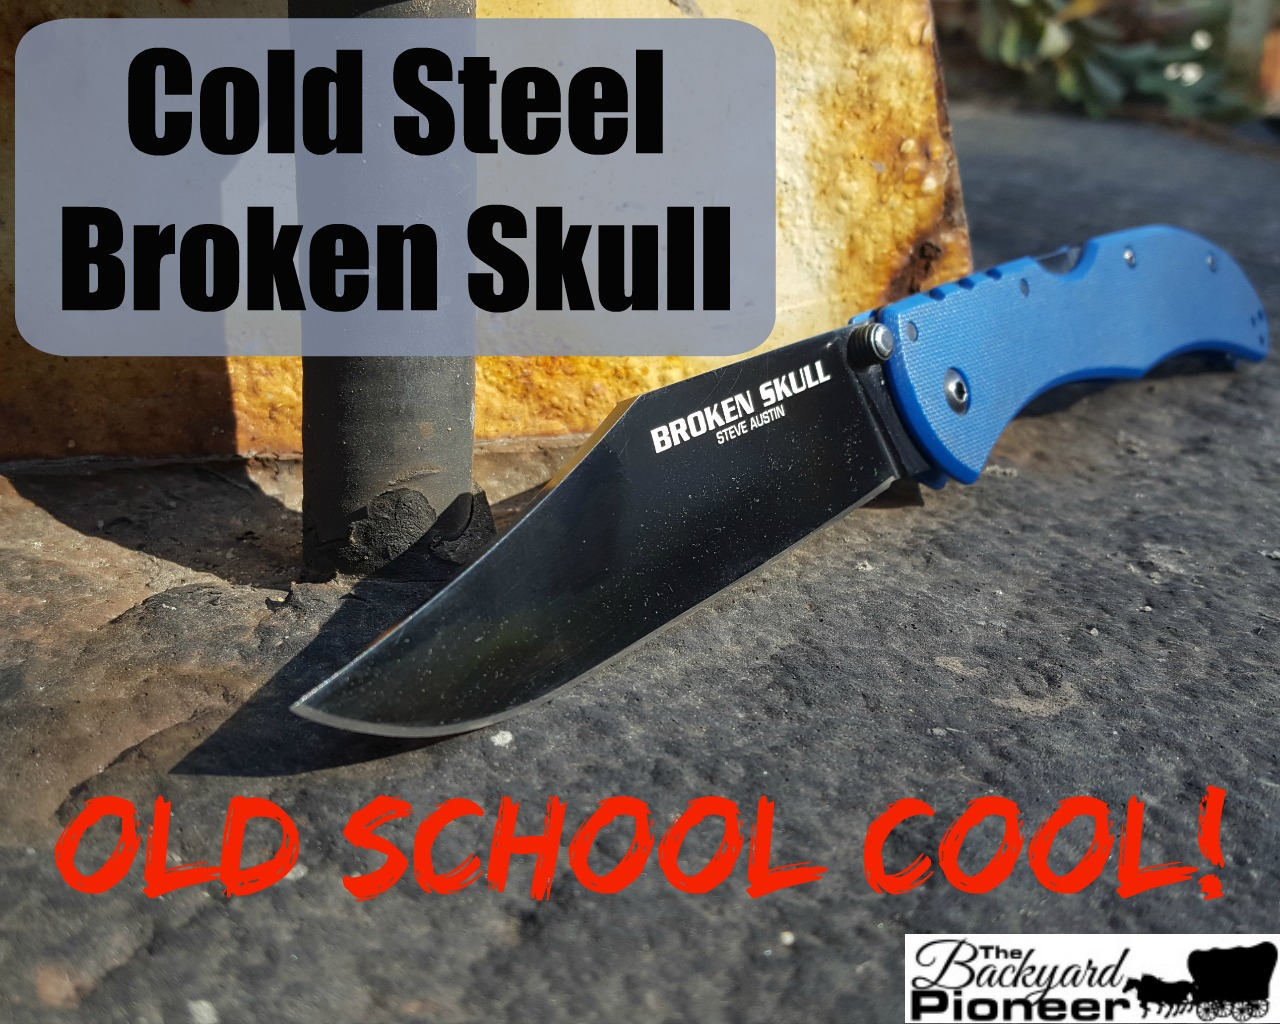 Cold Steel Broken Skull